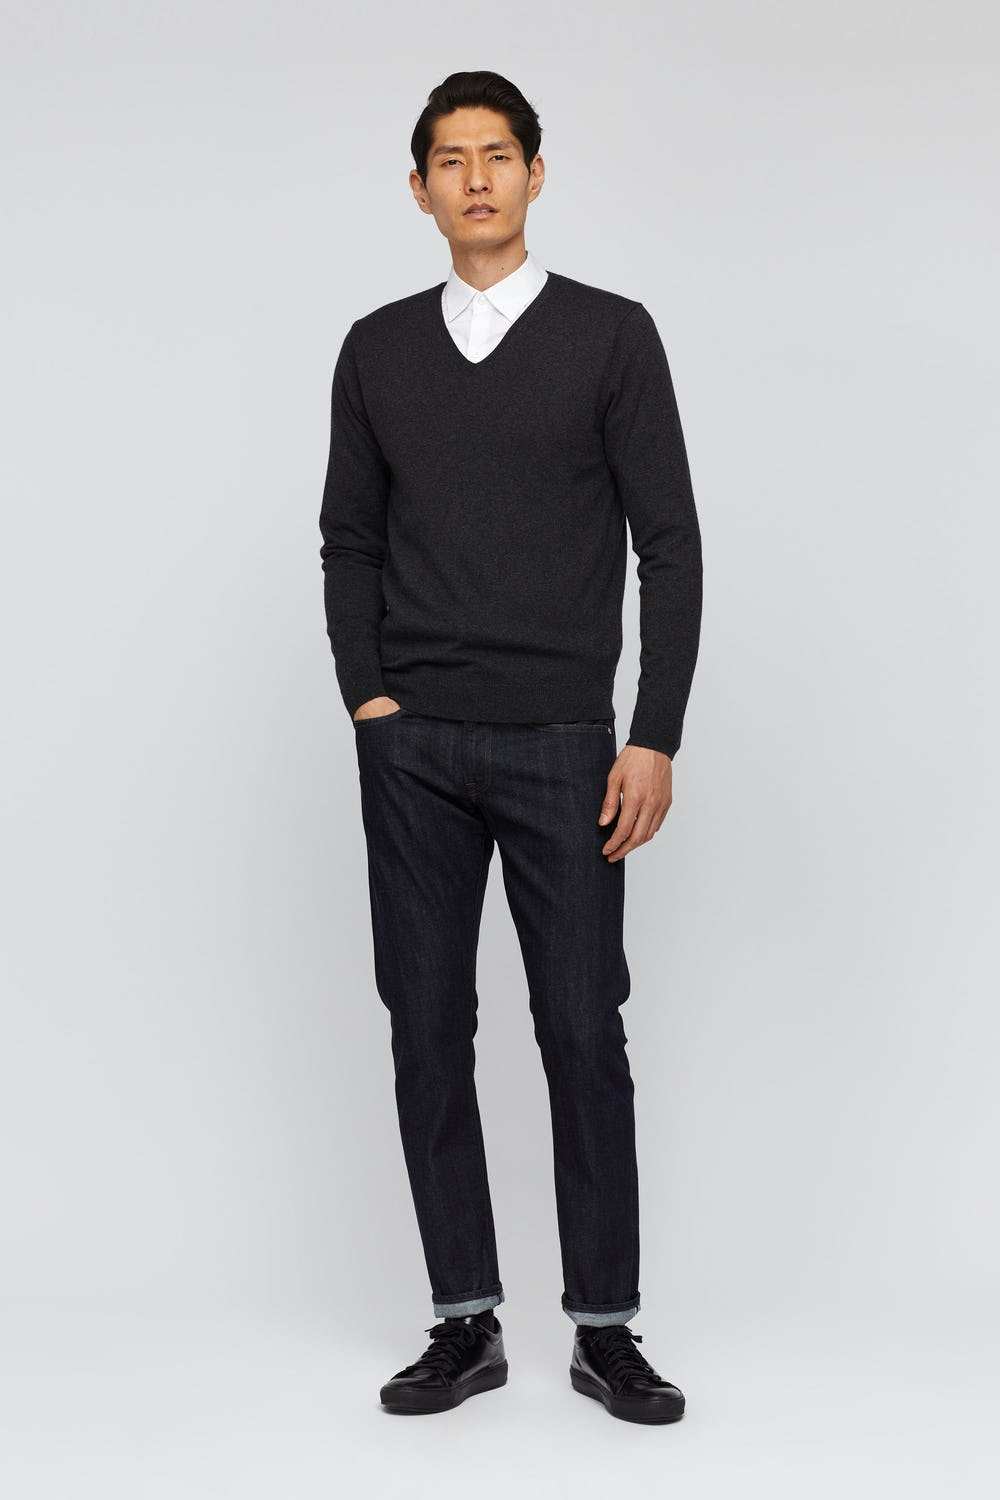 Bonobos Men's Cotton Cashmere V-Neck Sweater